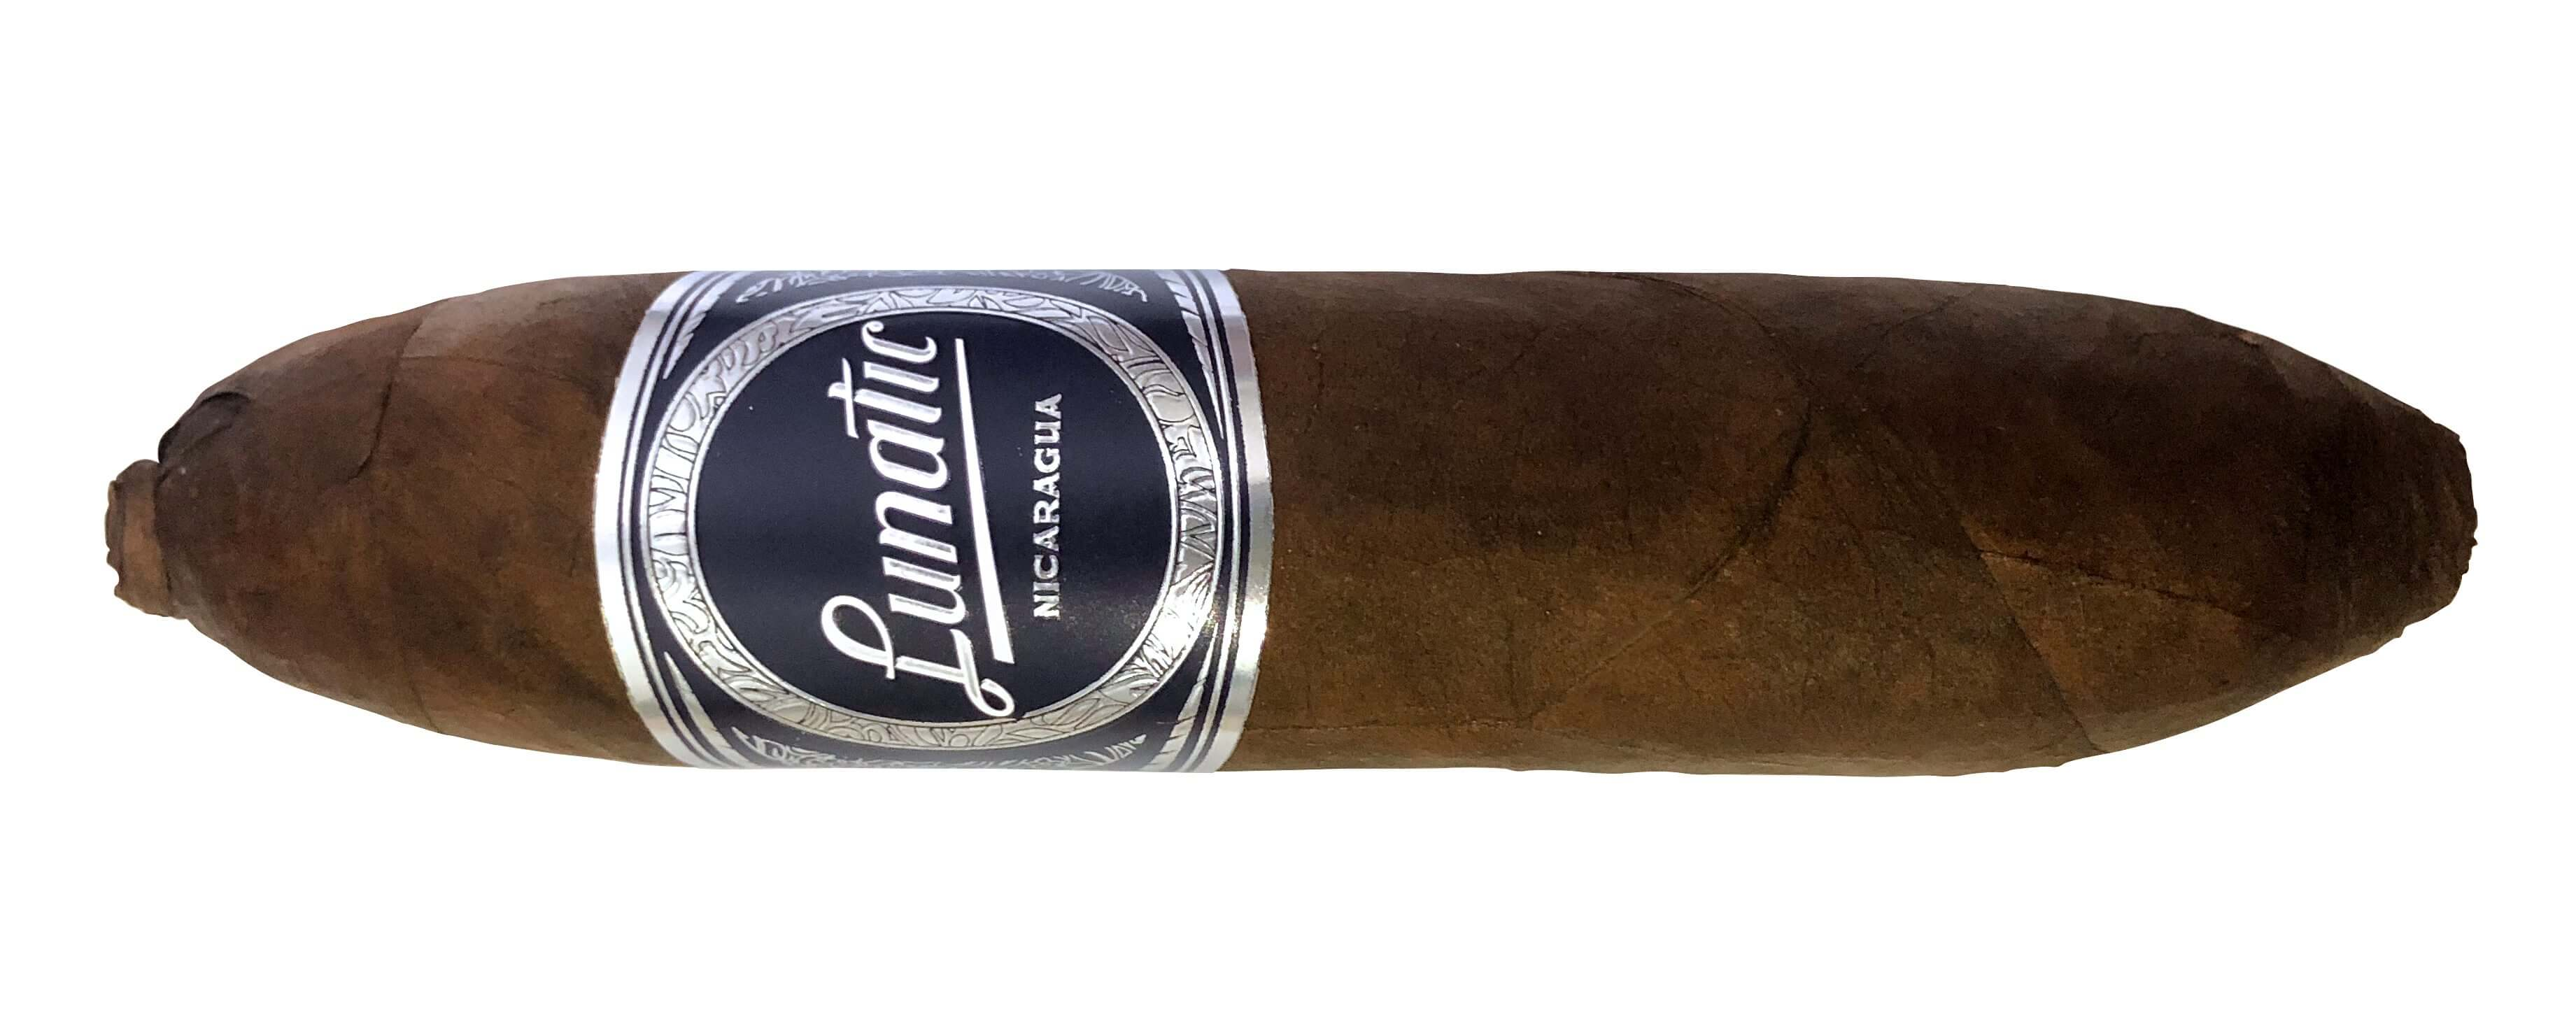 Cigar News: Aganorsa Leaf Announces JFR Lunatic Loco